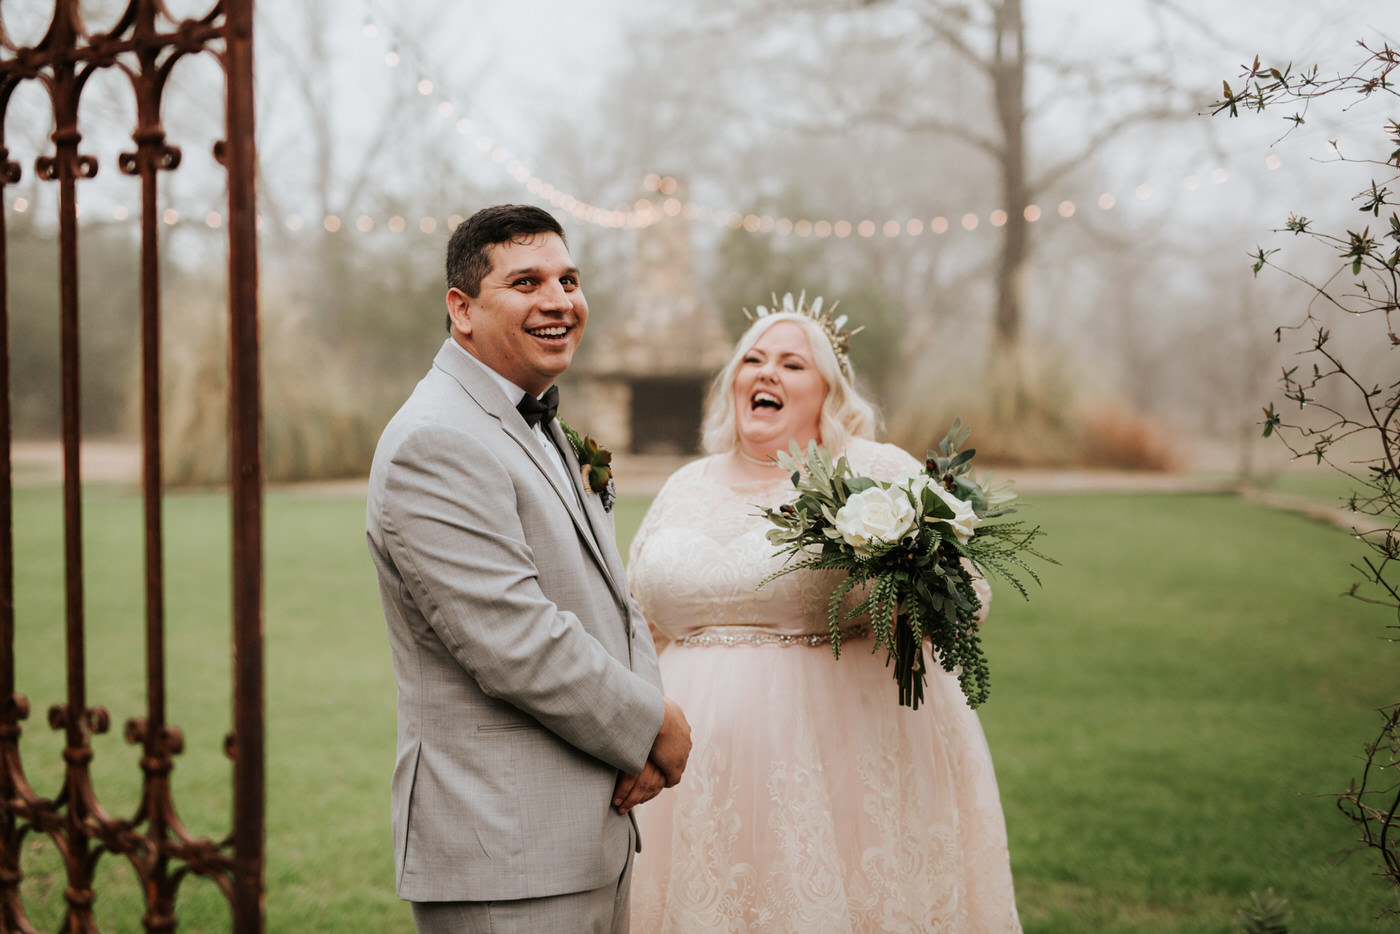 Happy couple's first look at their wedding in Austin, Texas